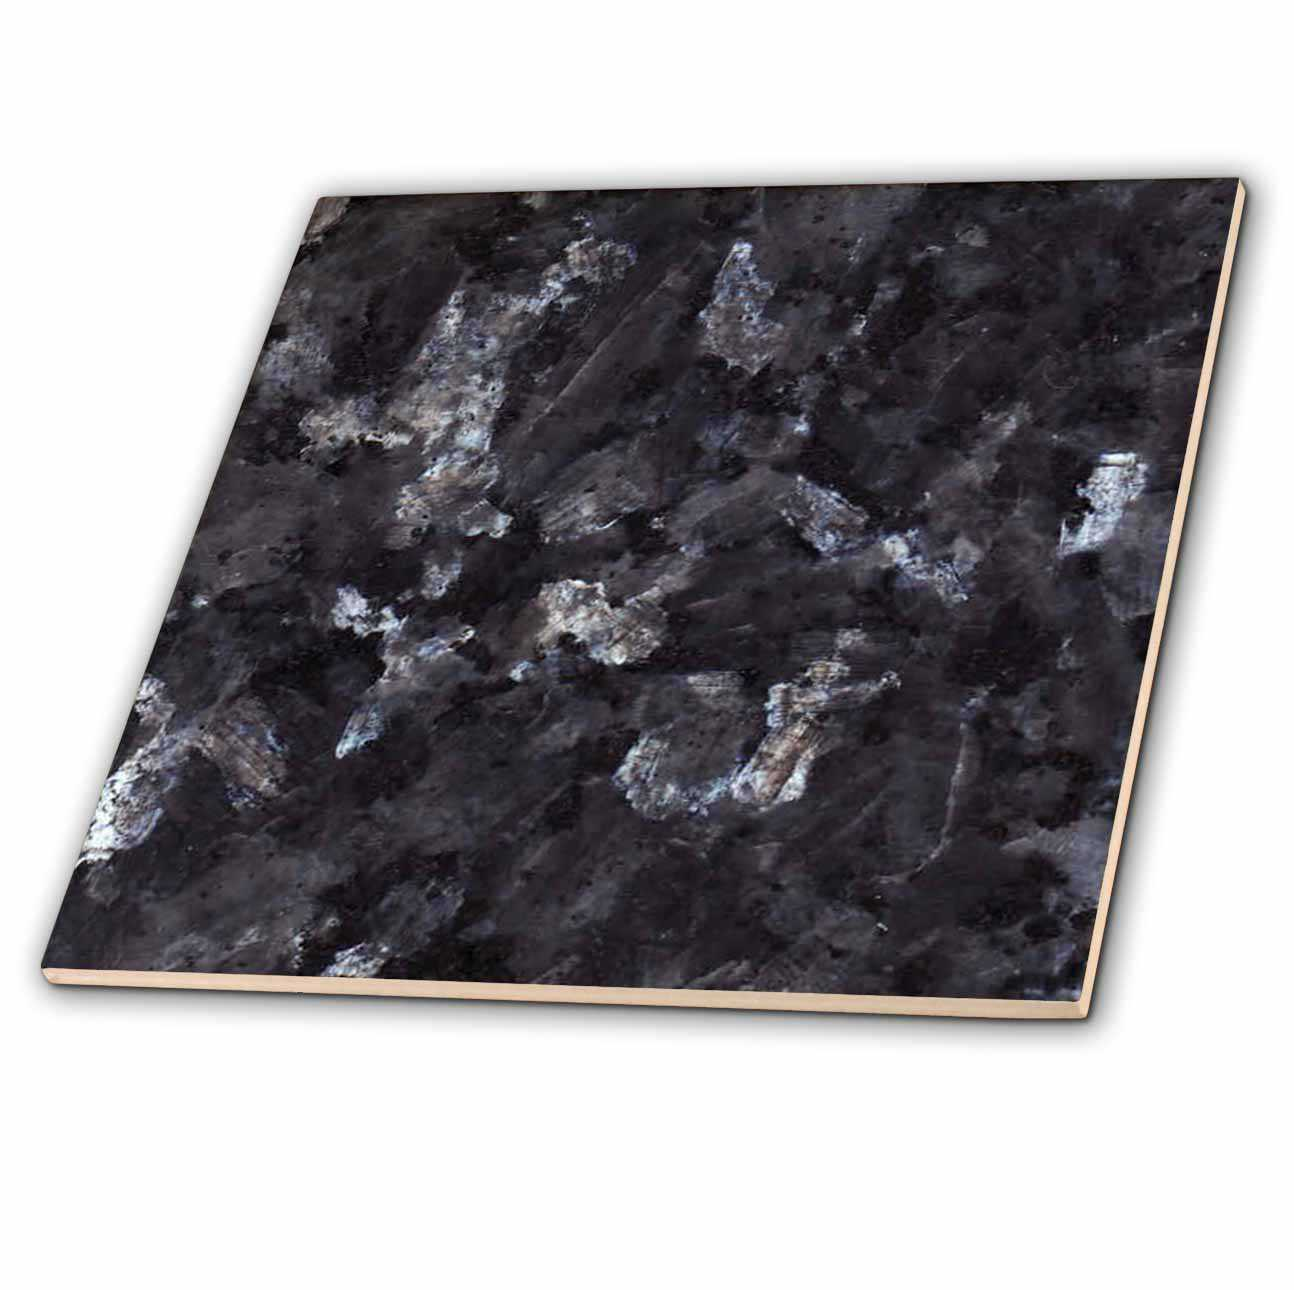 3dRose Blue Pearl granite print - Ceramic Tile, 6-inch